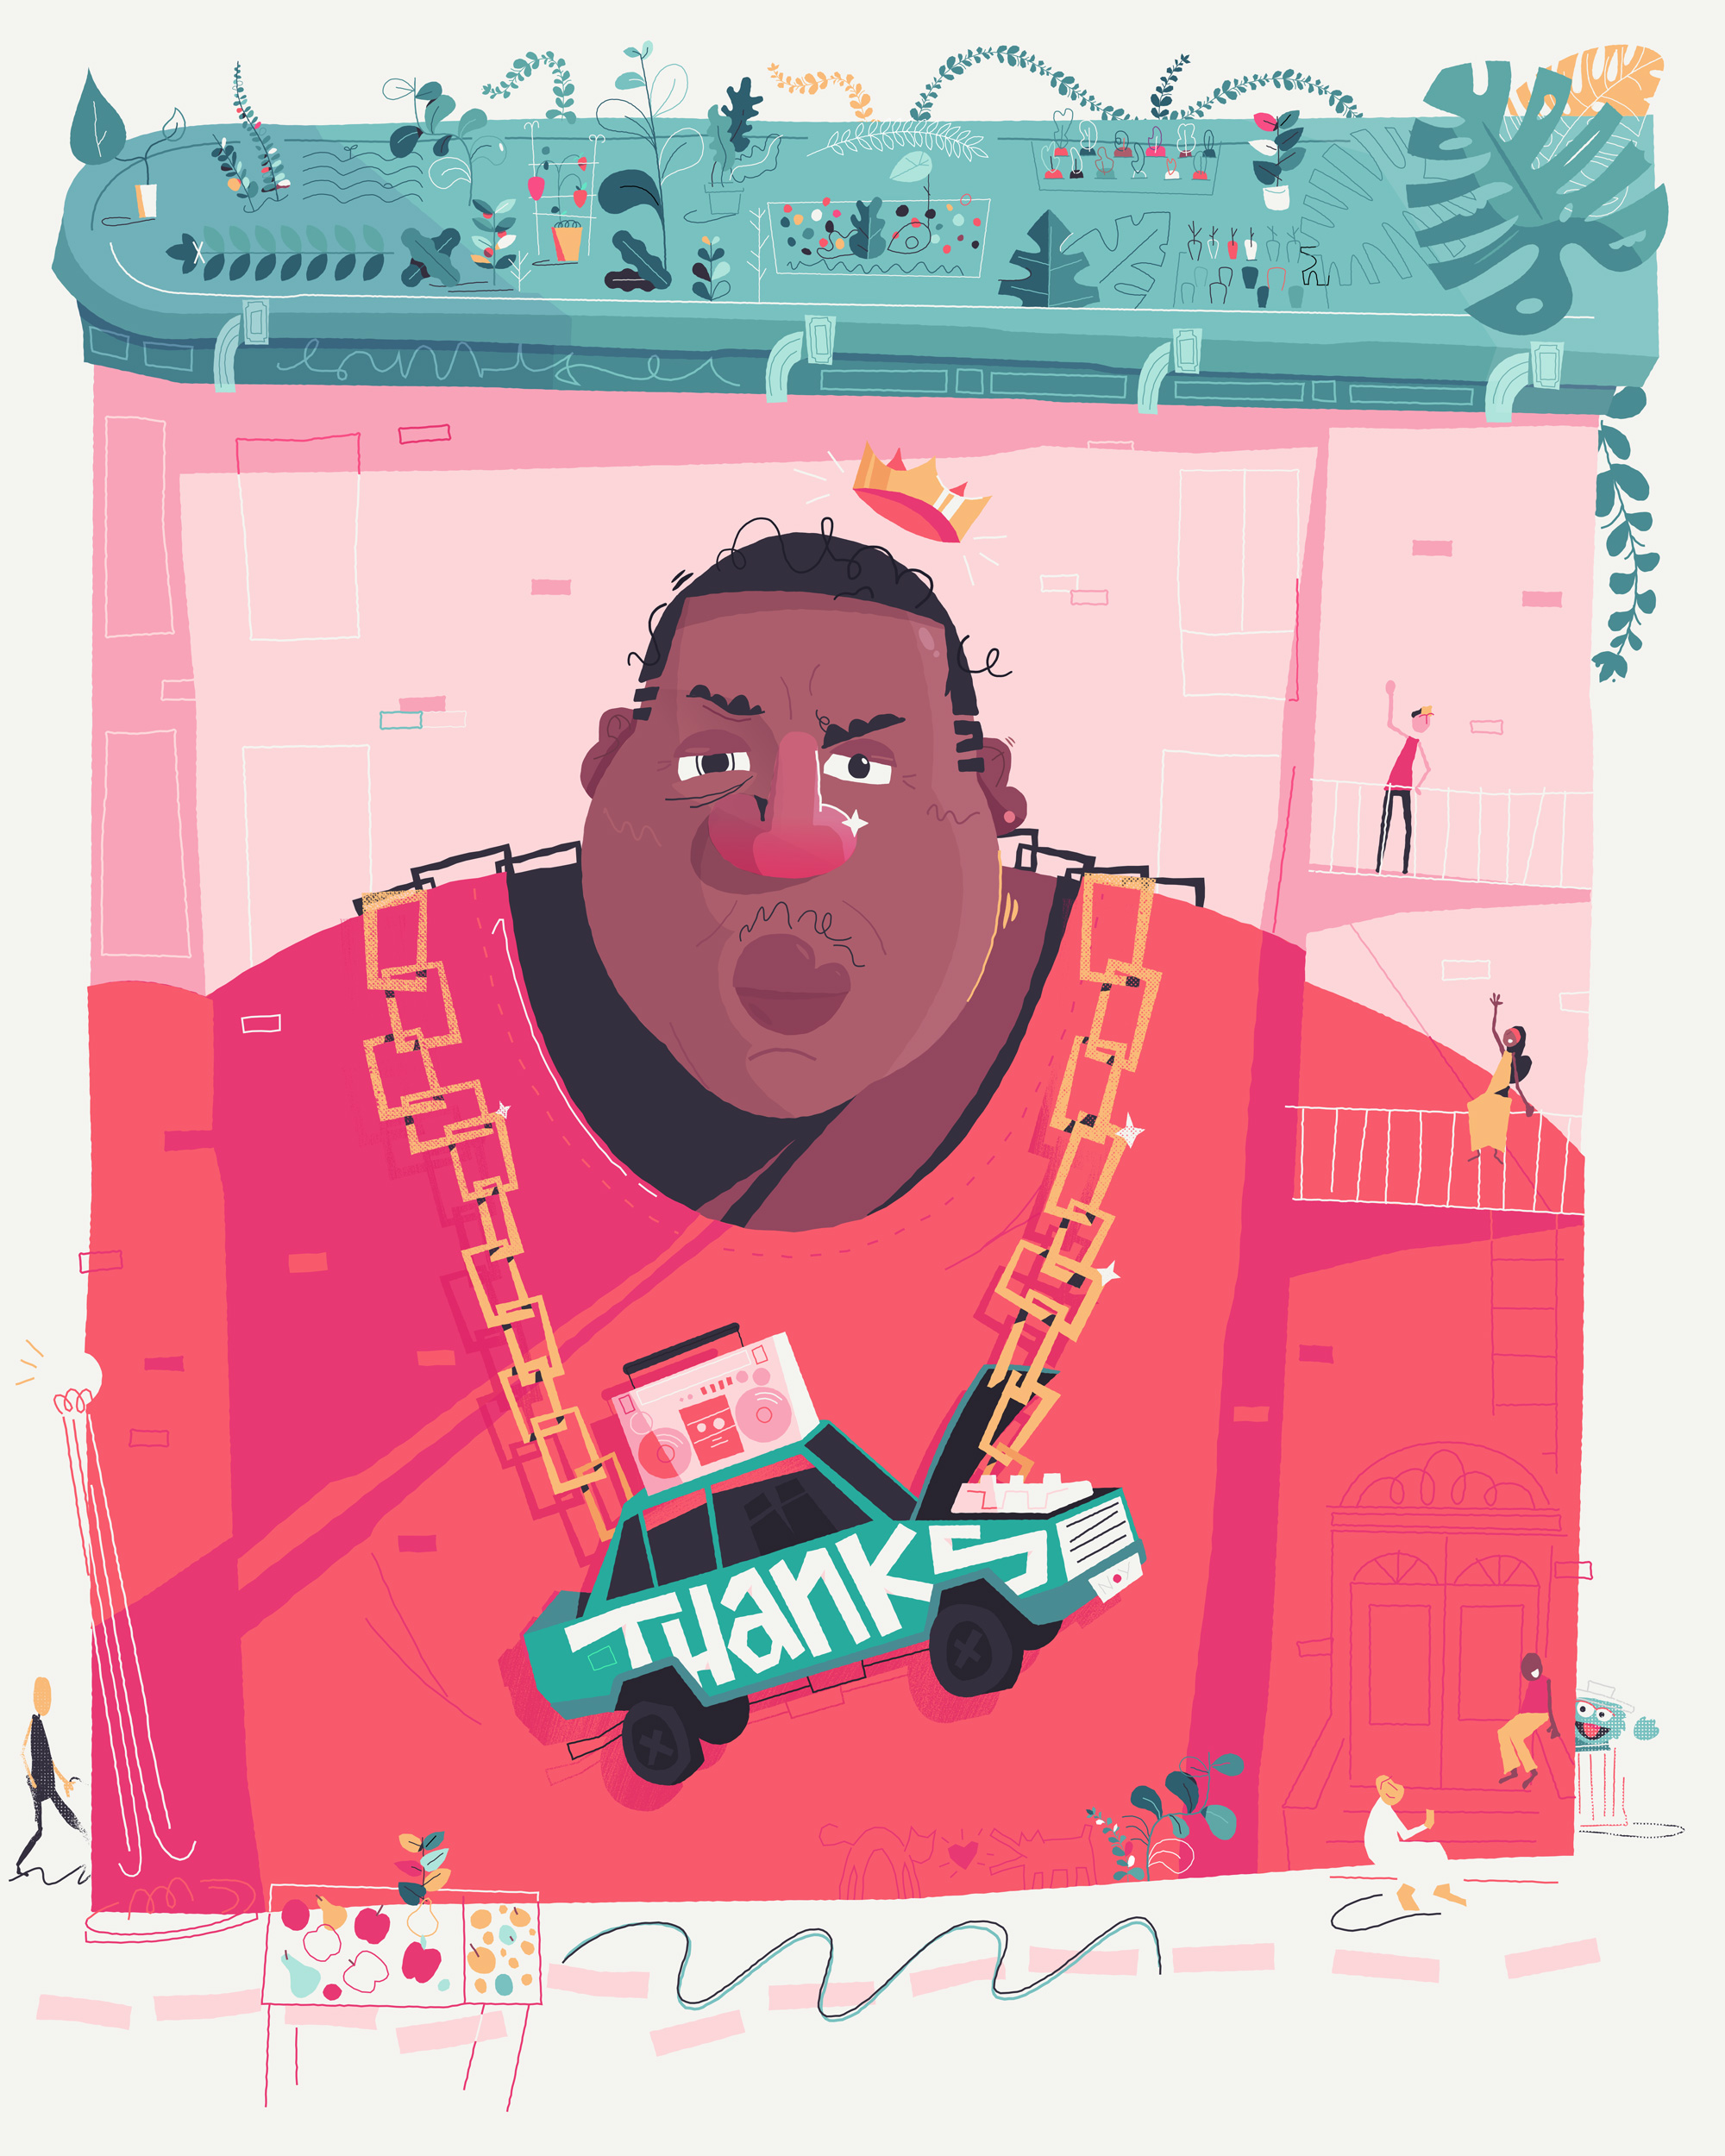 biggie-thanks-web1.jpg